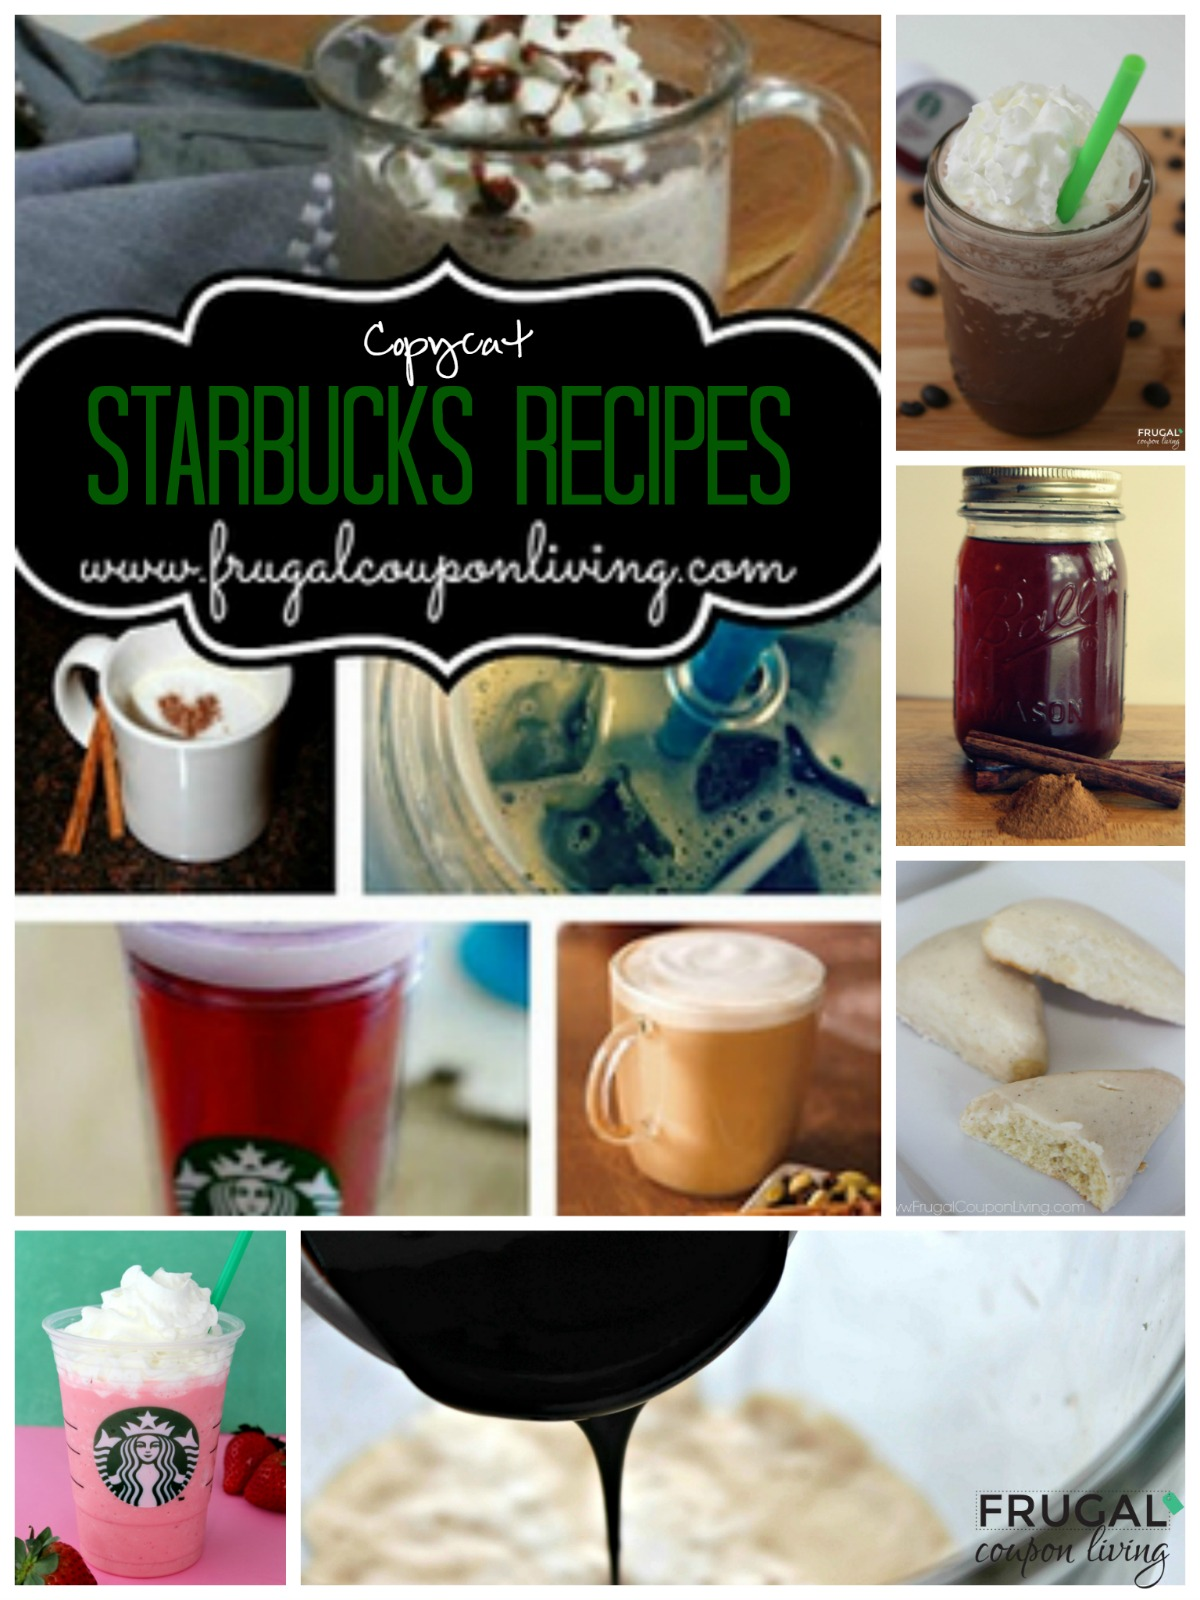 copycat-starbucks-recipes-collage-frugal-coupon-living